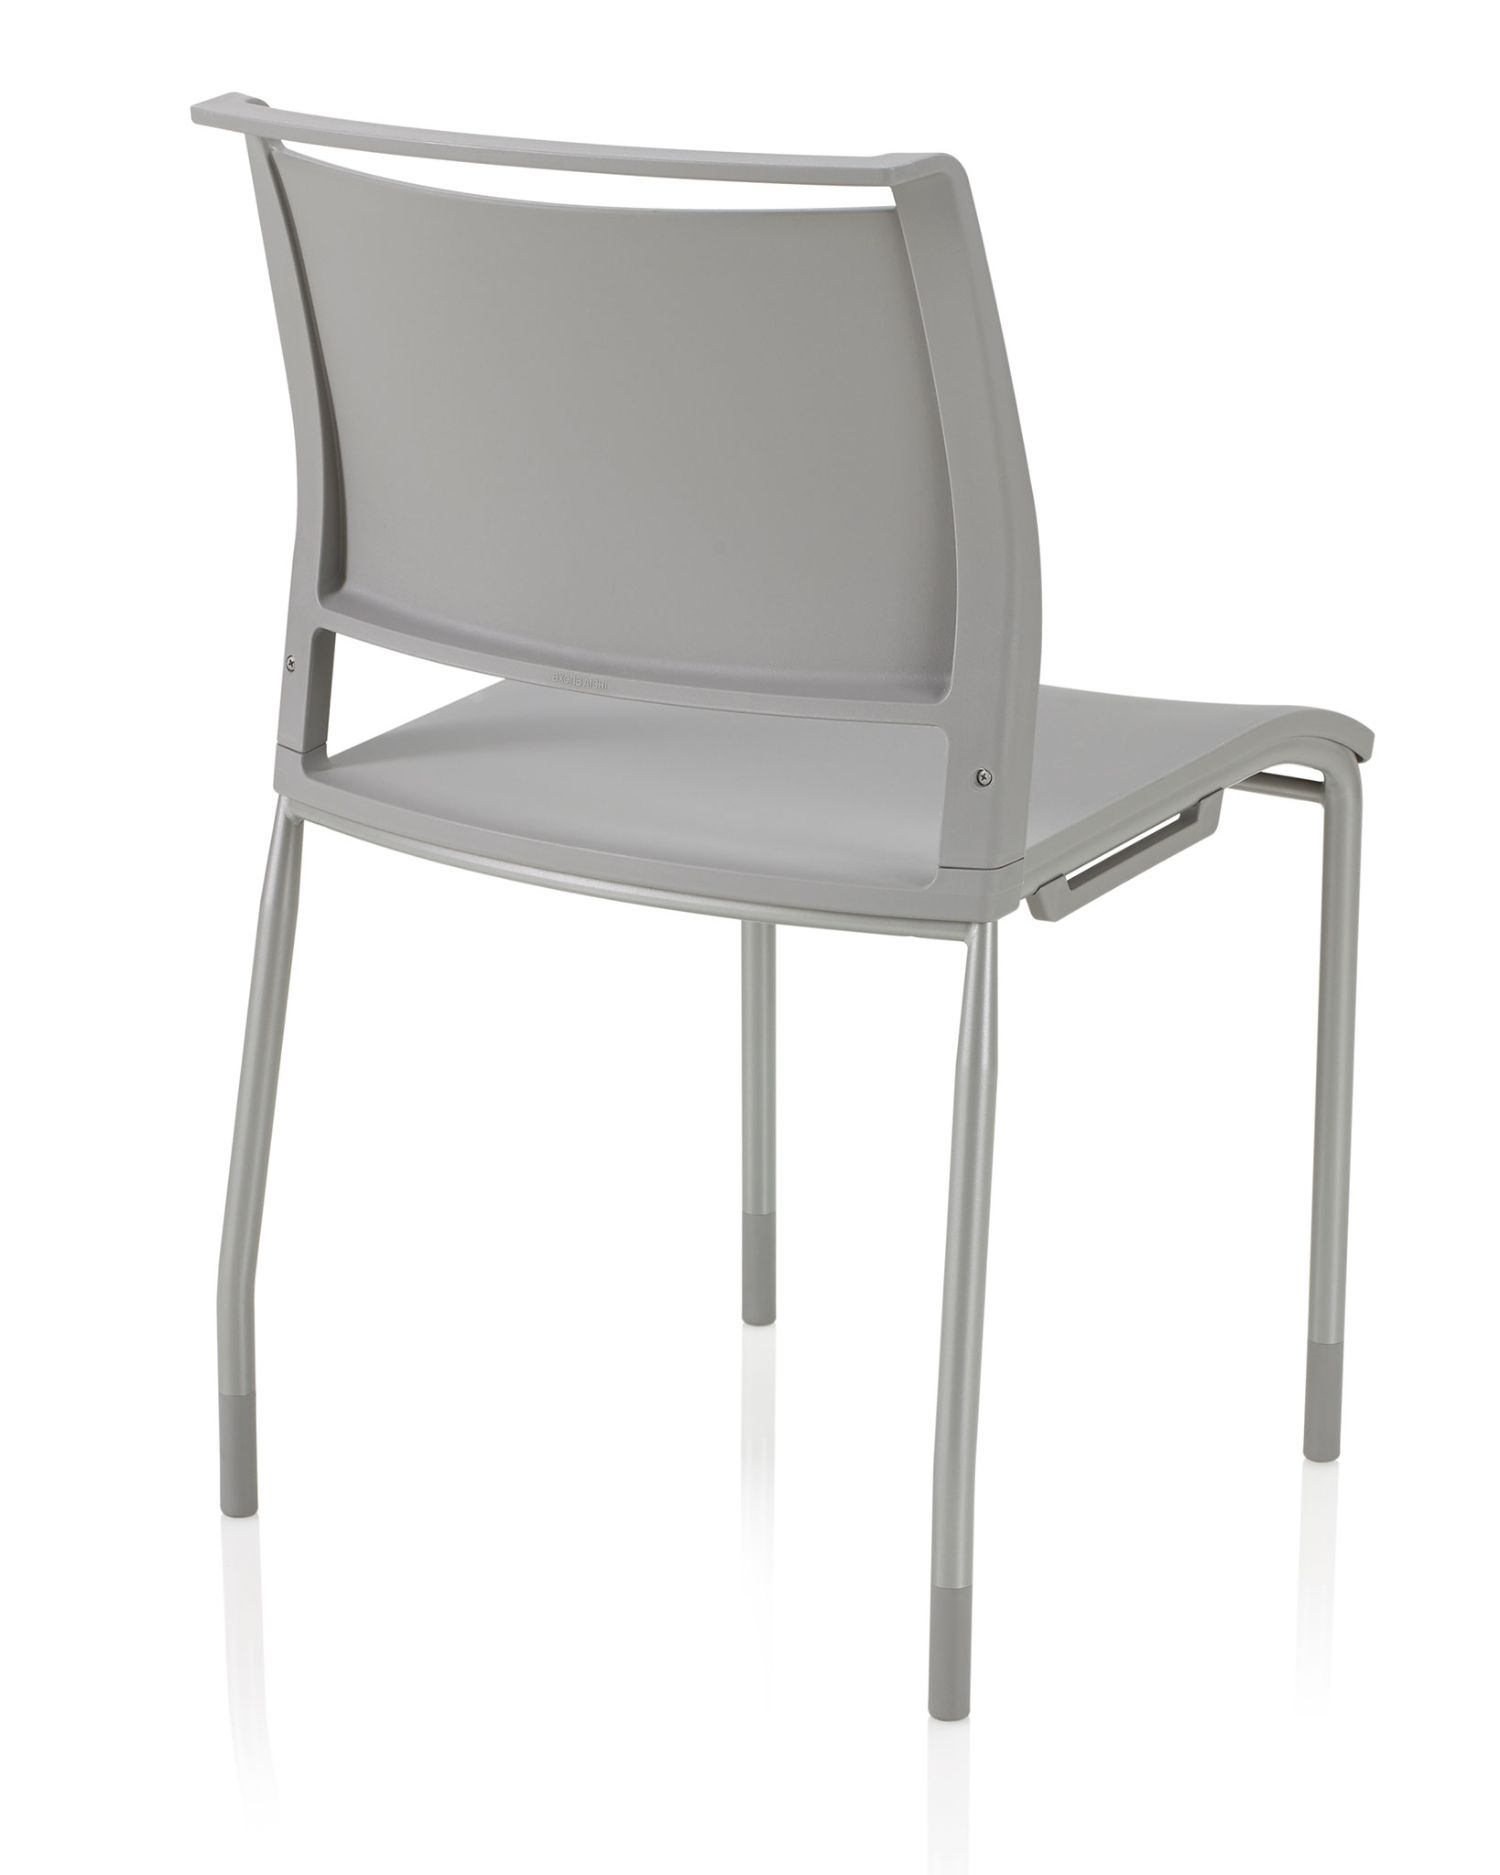 opt4 stacking chair back